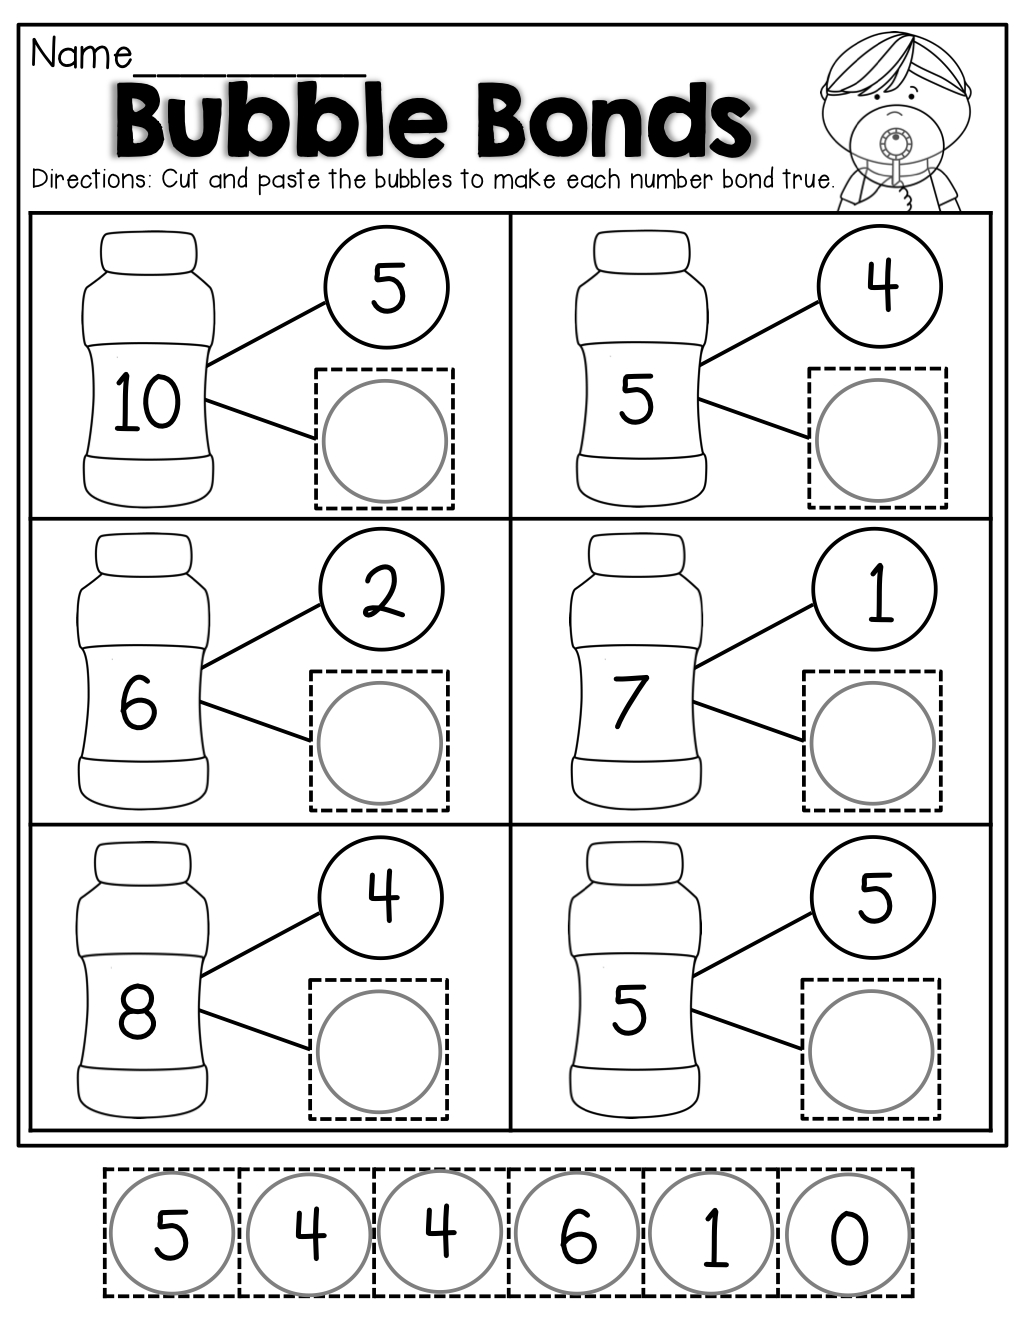 Number Bubble Bonds (Cut And Paste) | Kindergarten Activities | Math - Free Printable Number Bonds Worksheets For Kindergarten